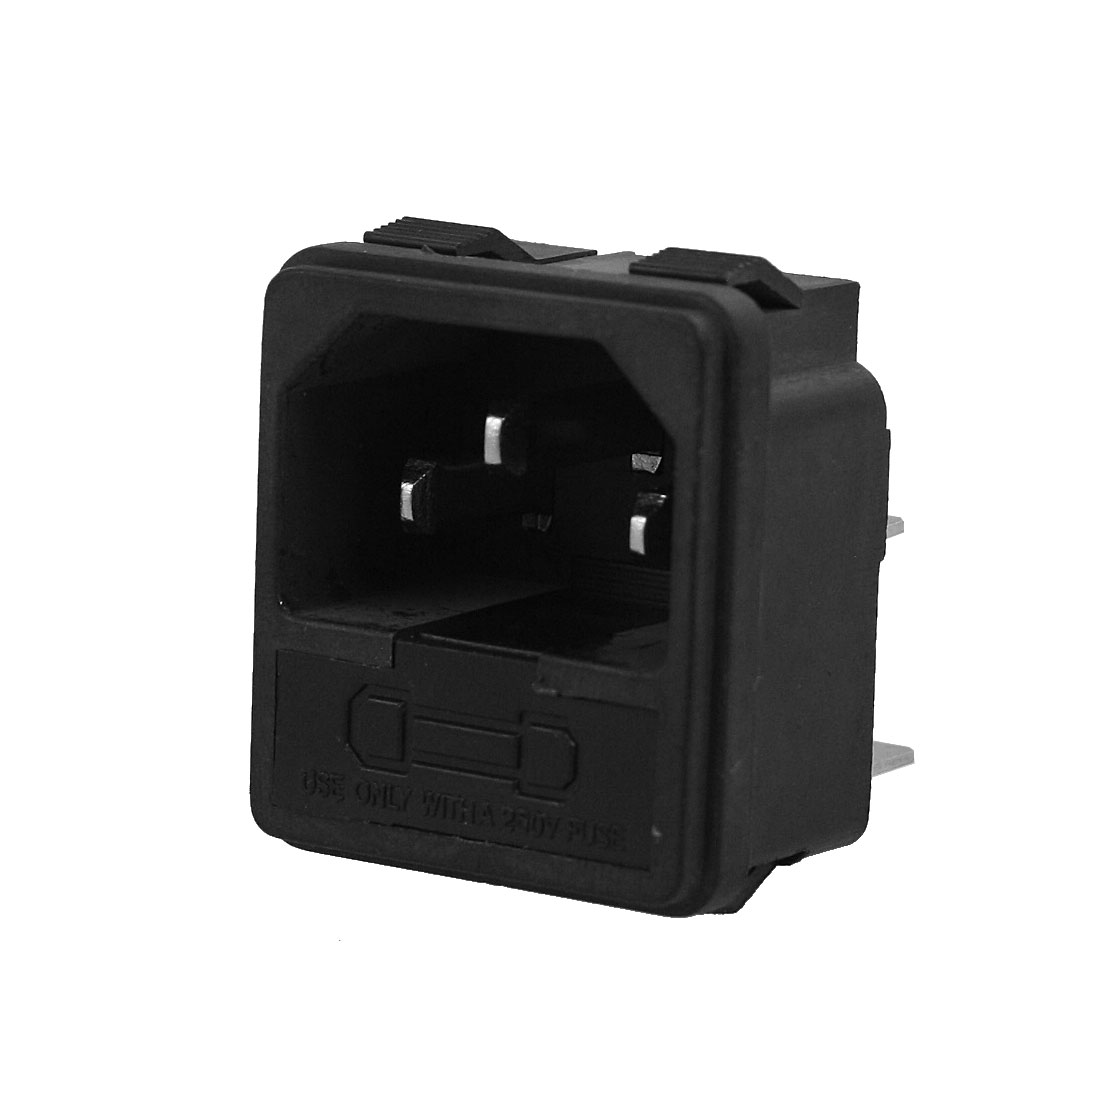 IEC320 C14 Inlet Male Power 3 Terminals Socket AC 250V 10A Kbbwk